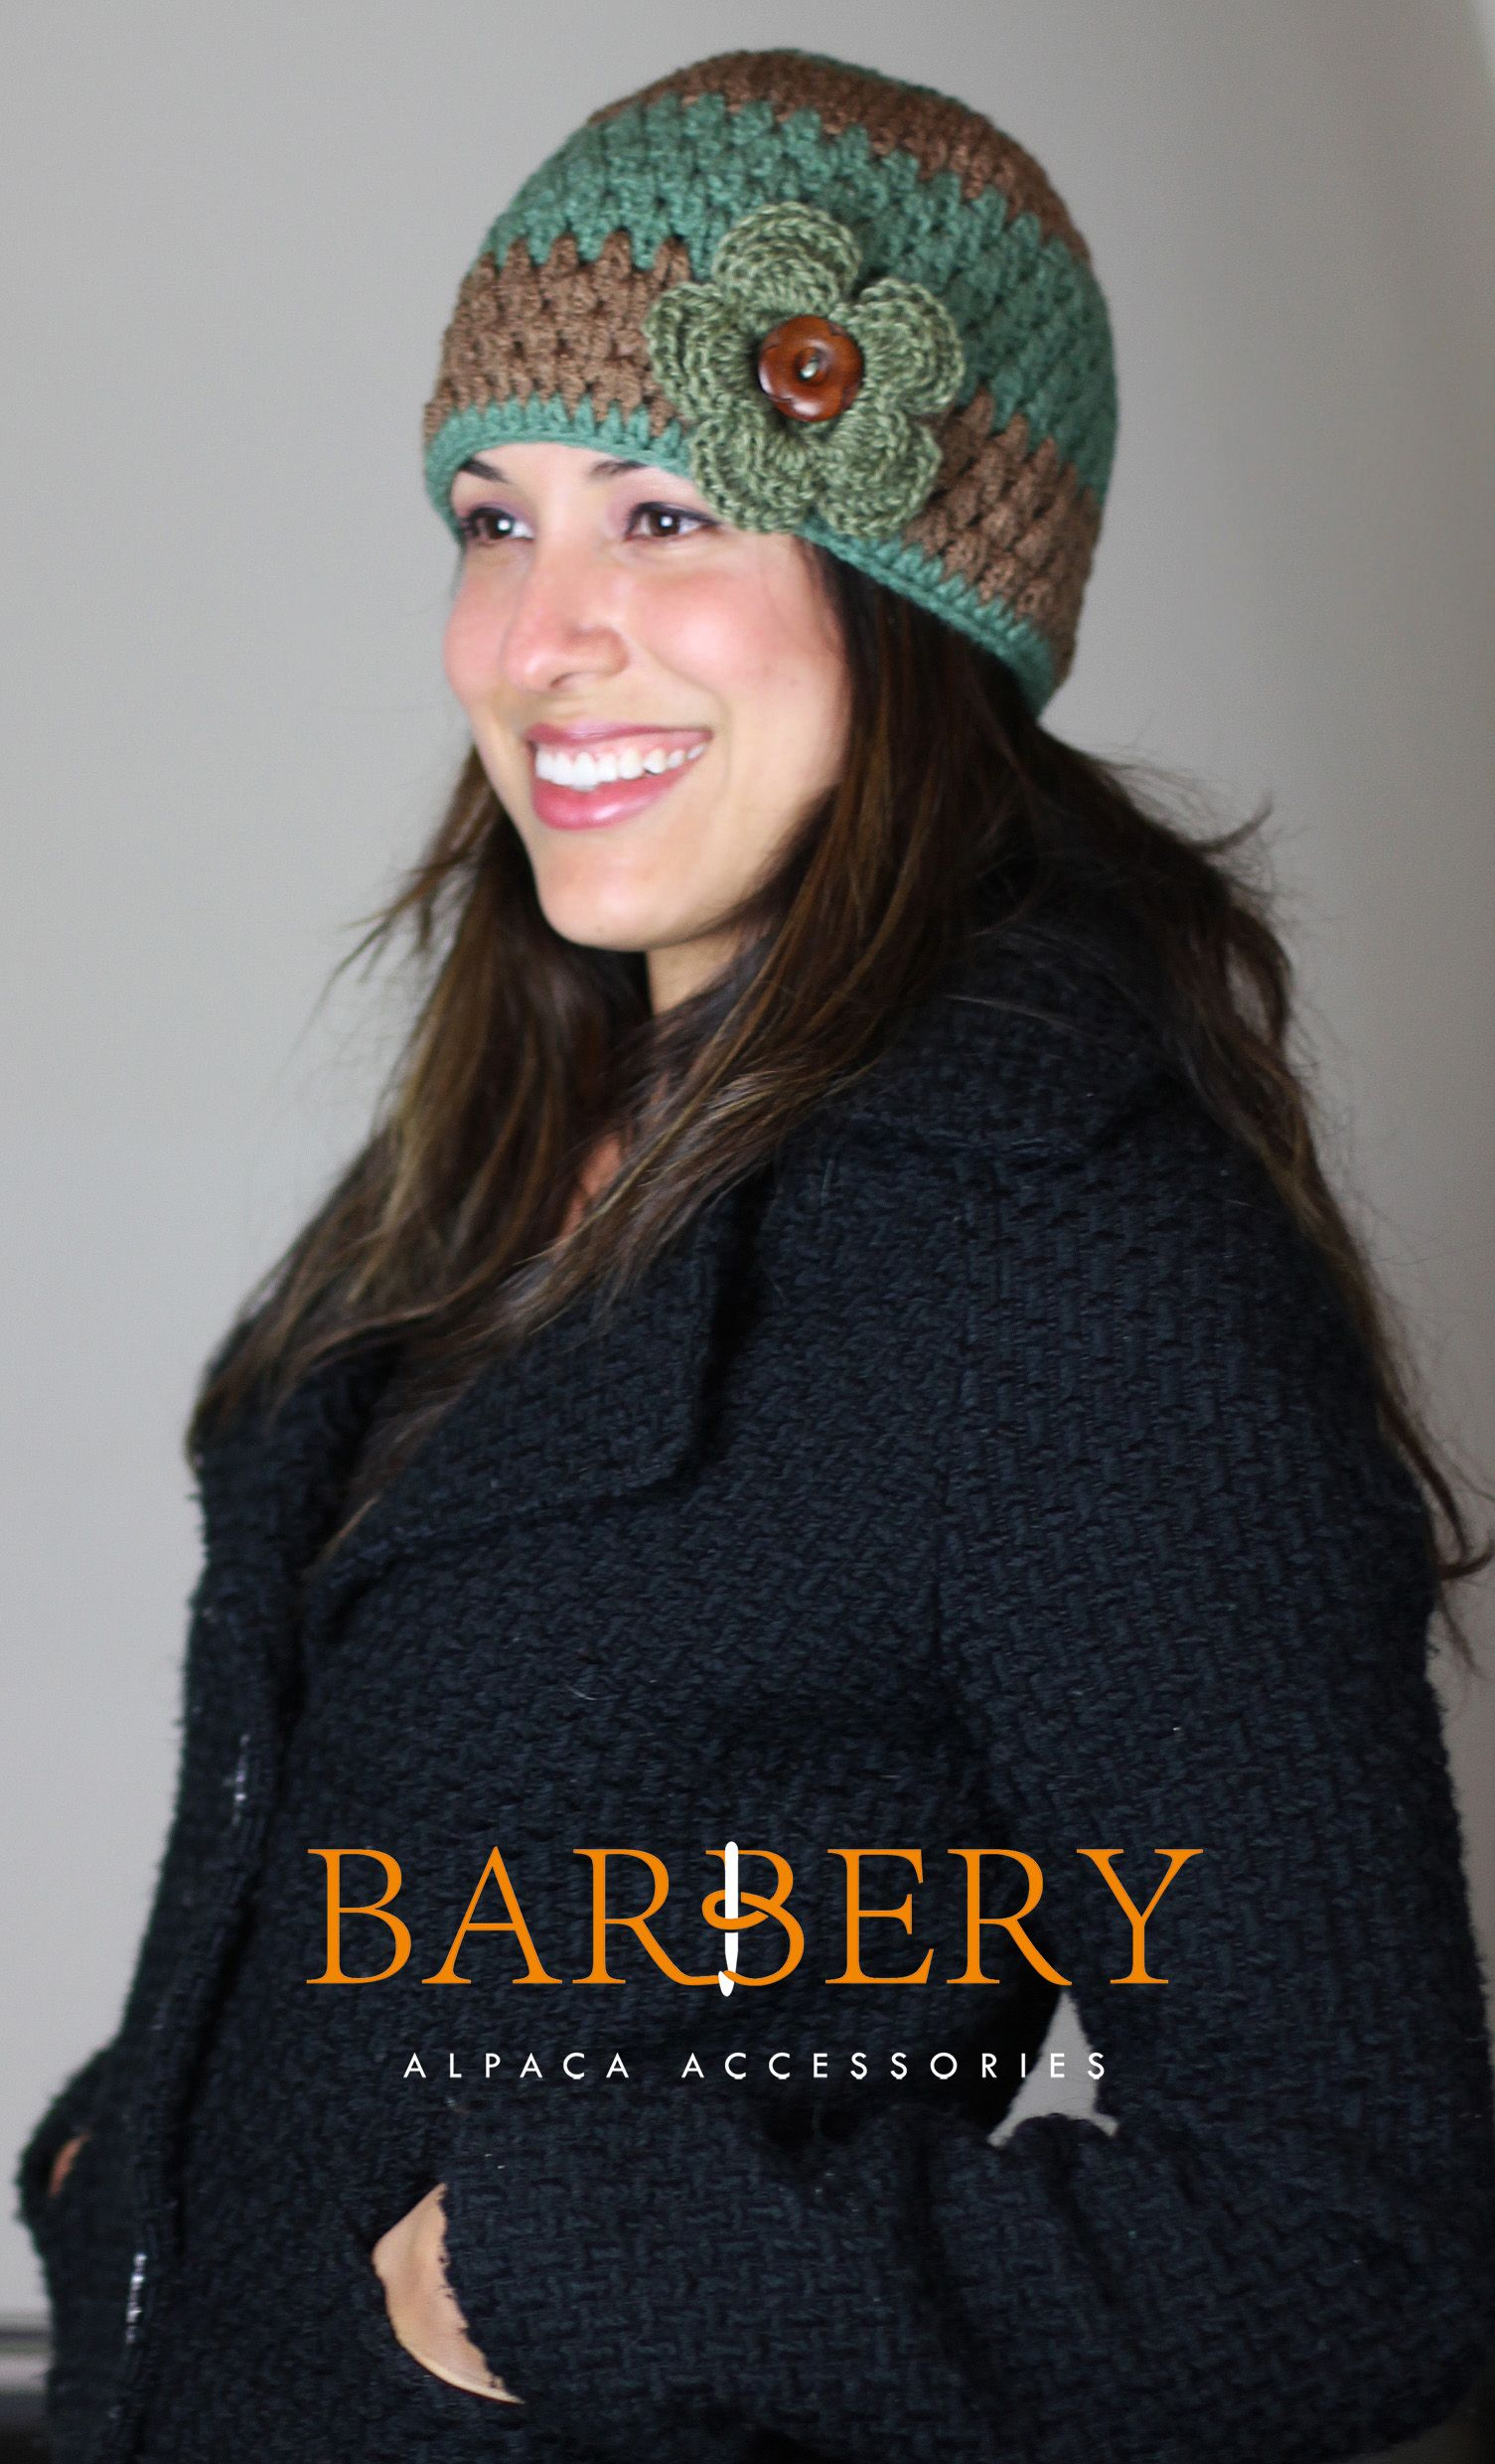 2eb1ab15cb8 This hat can be custom made in any color color combination of your choice!  Crocheted 100% by hand using a warm and cozy PURE ALPACA yarn from Bolivia